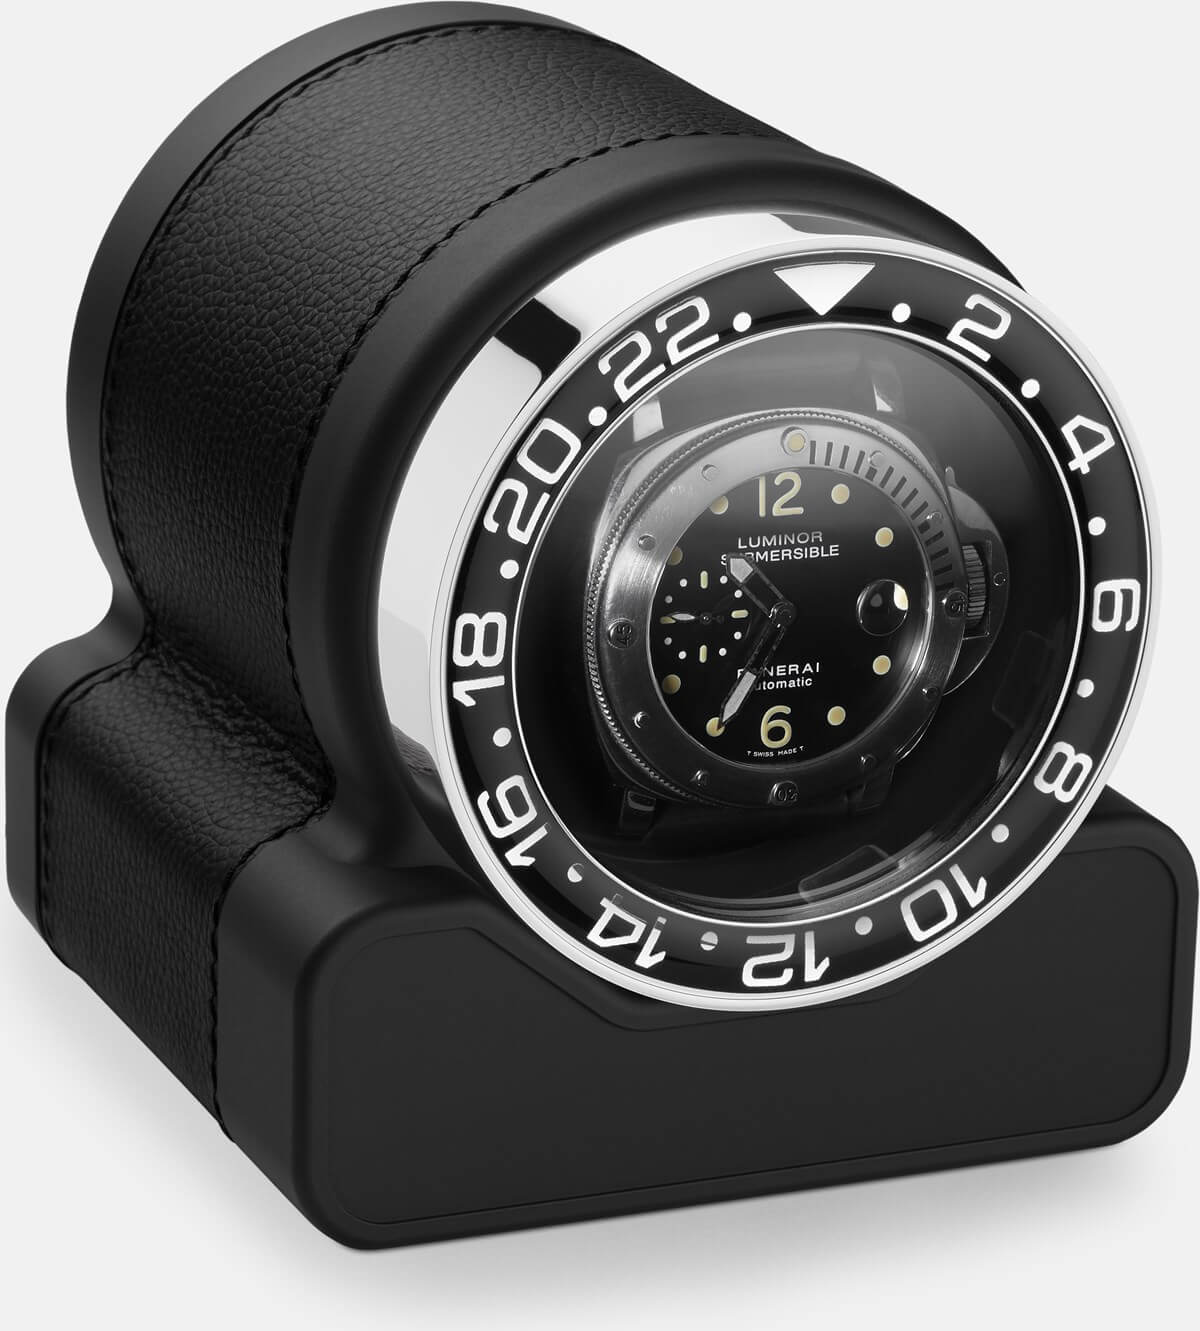 Scatola del Tempo Rotor One watchwinder